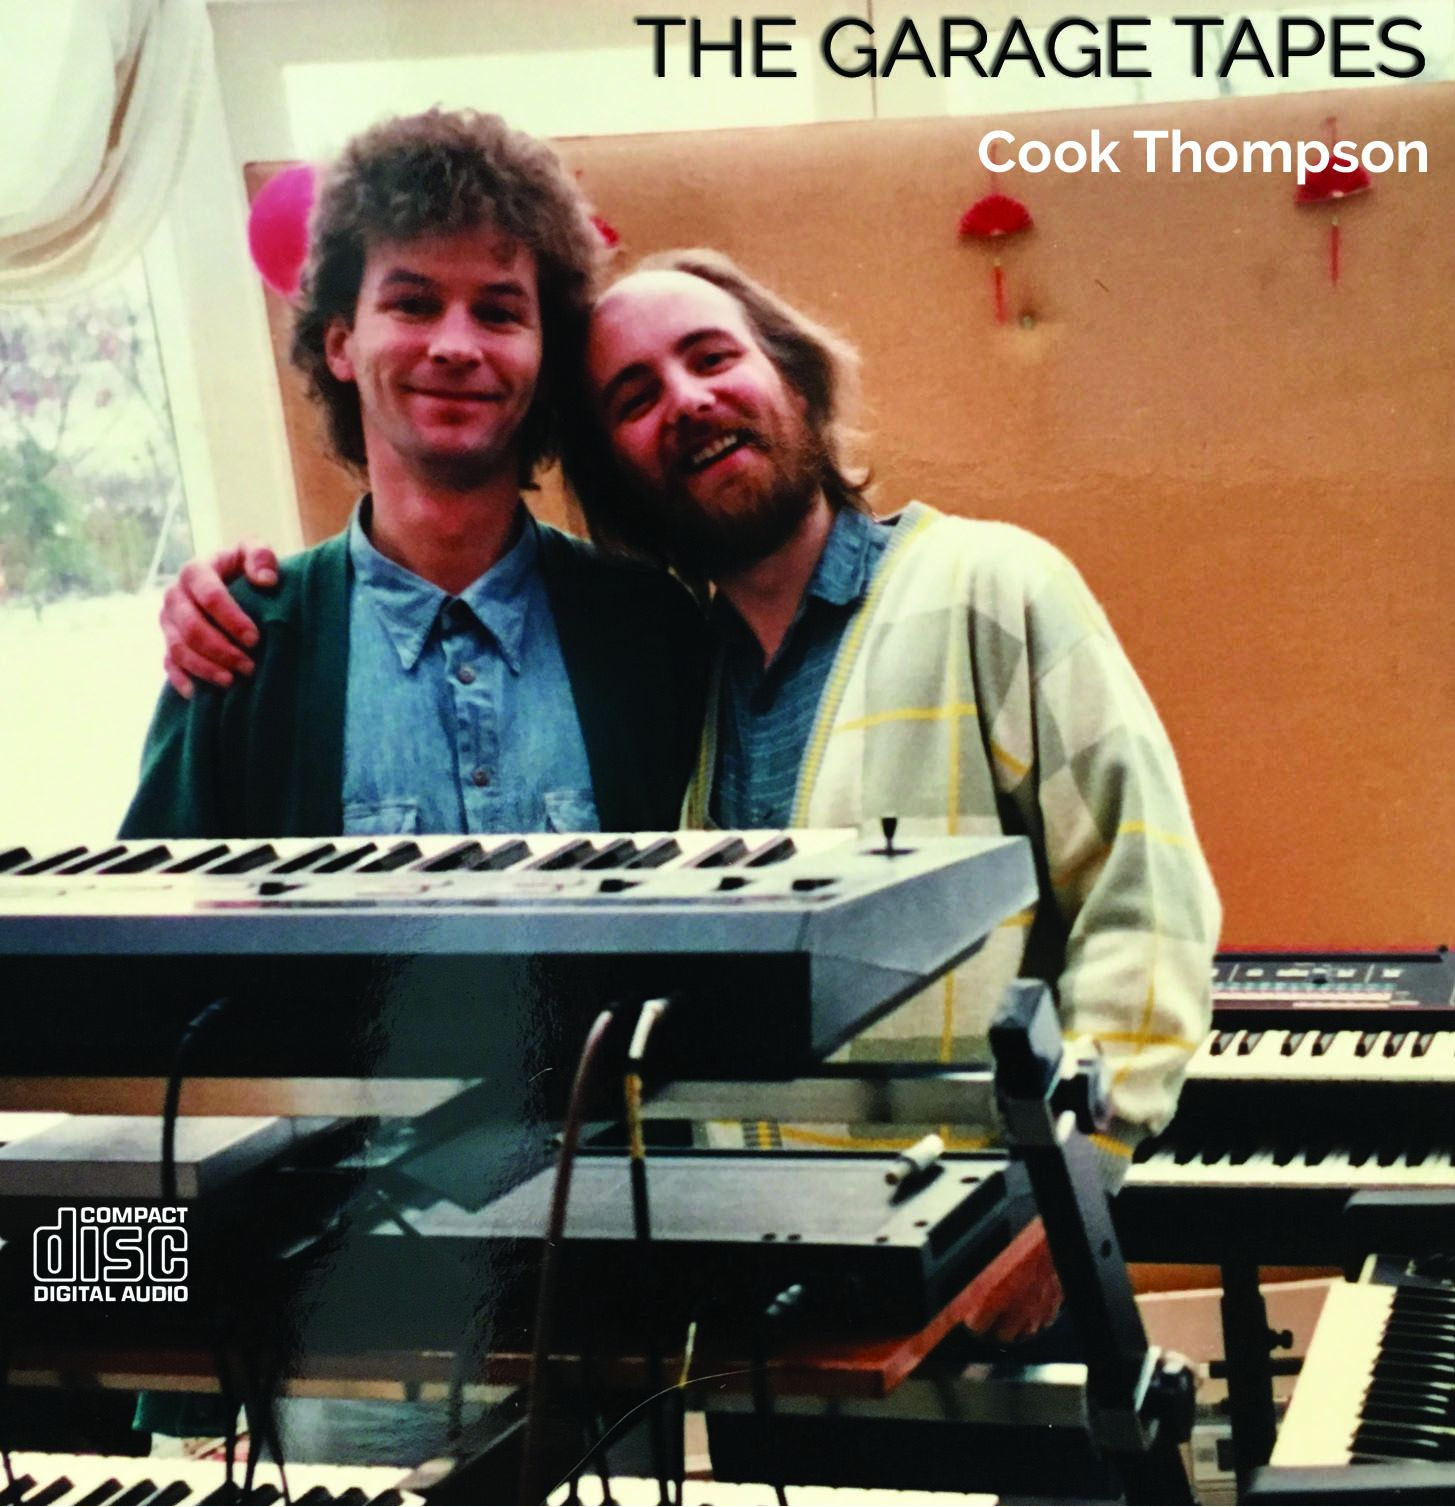 The Garage Tapes